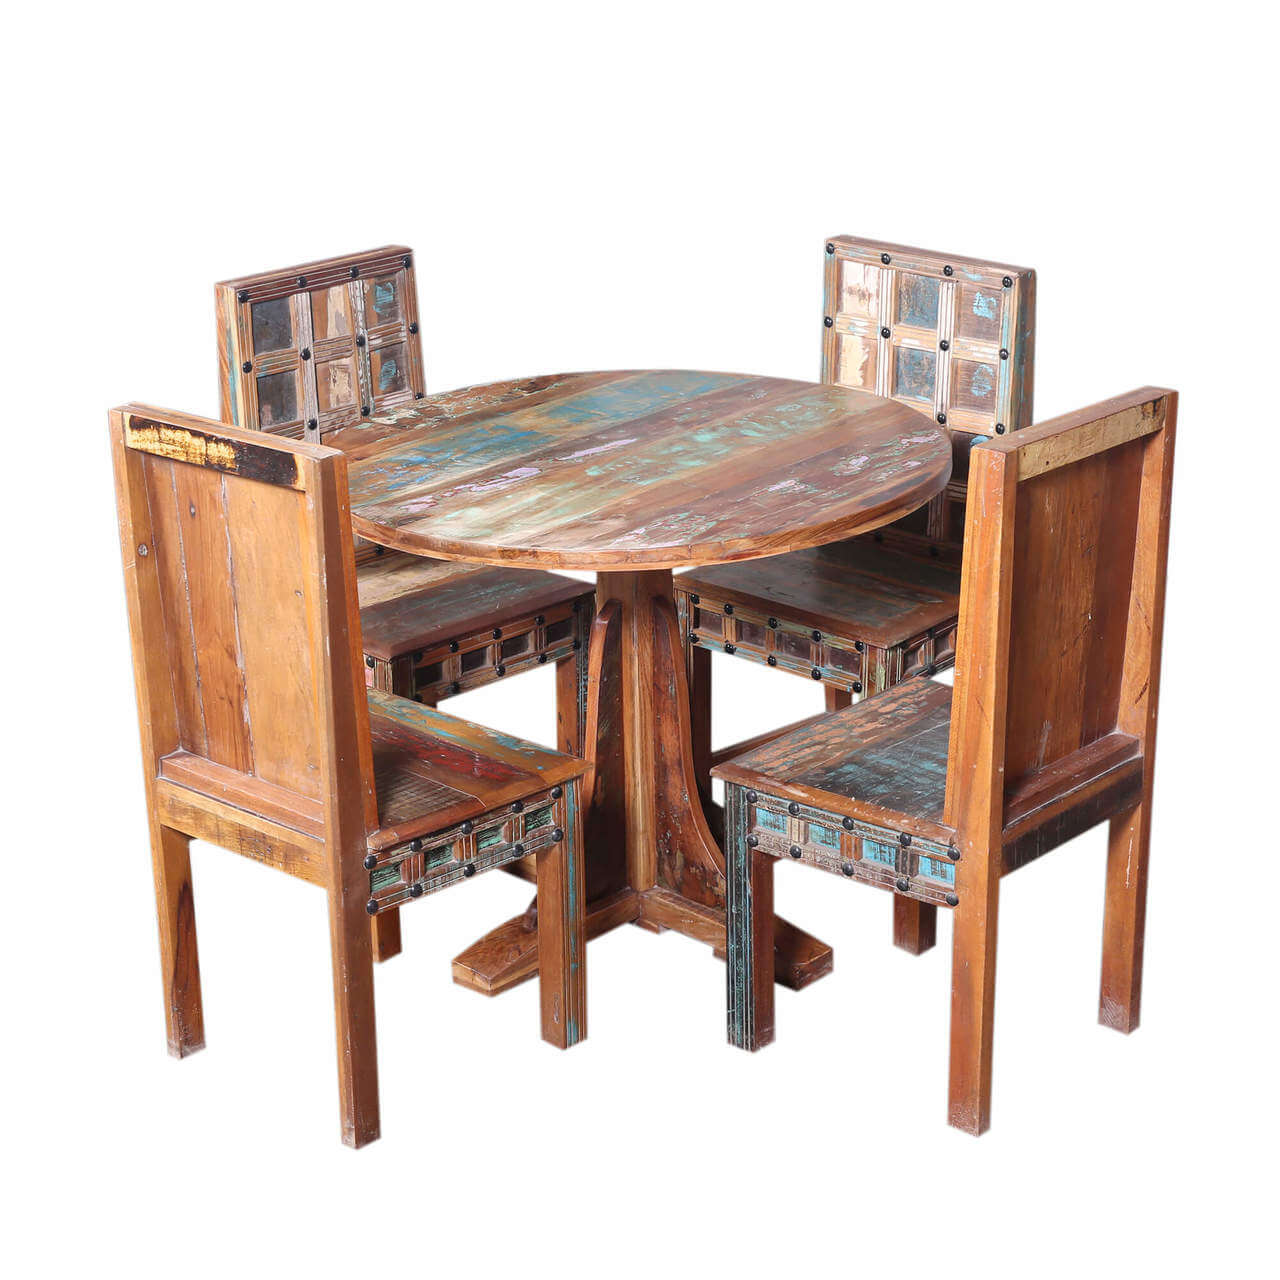 walstonburg reclaimed wood furniture round dining table and chair set. Black Bedroom Furniture Sets. Home Design Ideas